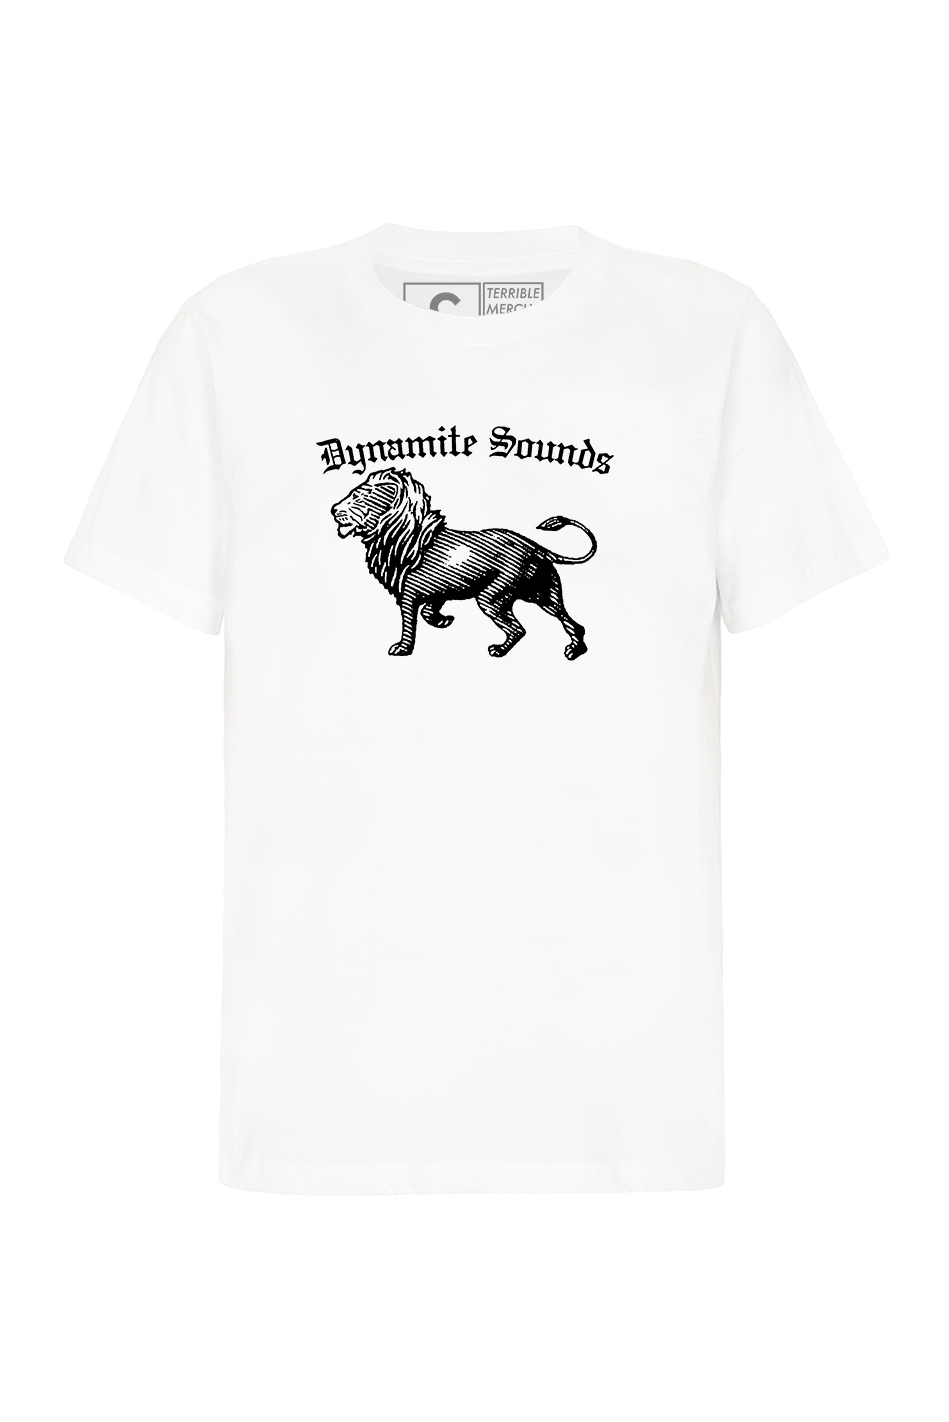 Dynamite Sounds Black Logo on White T Shirt